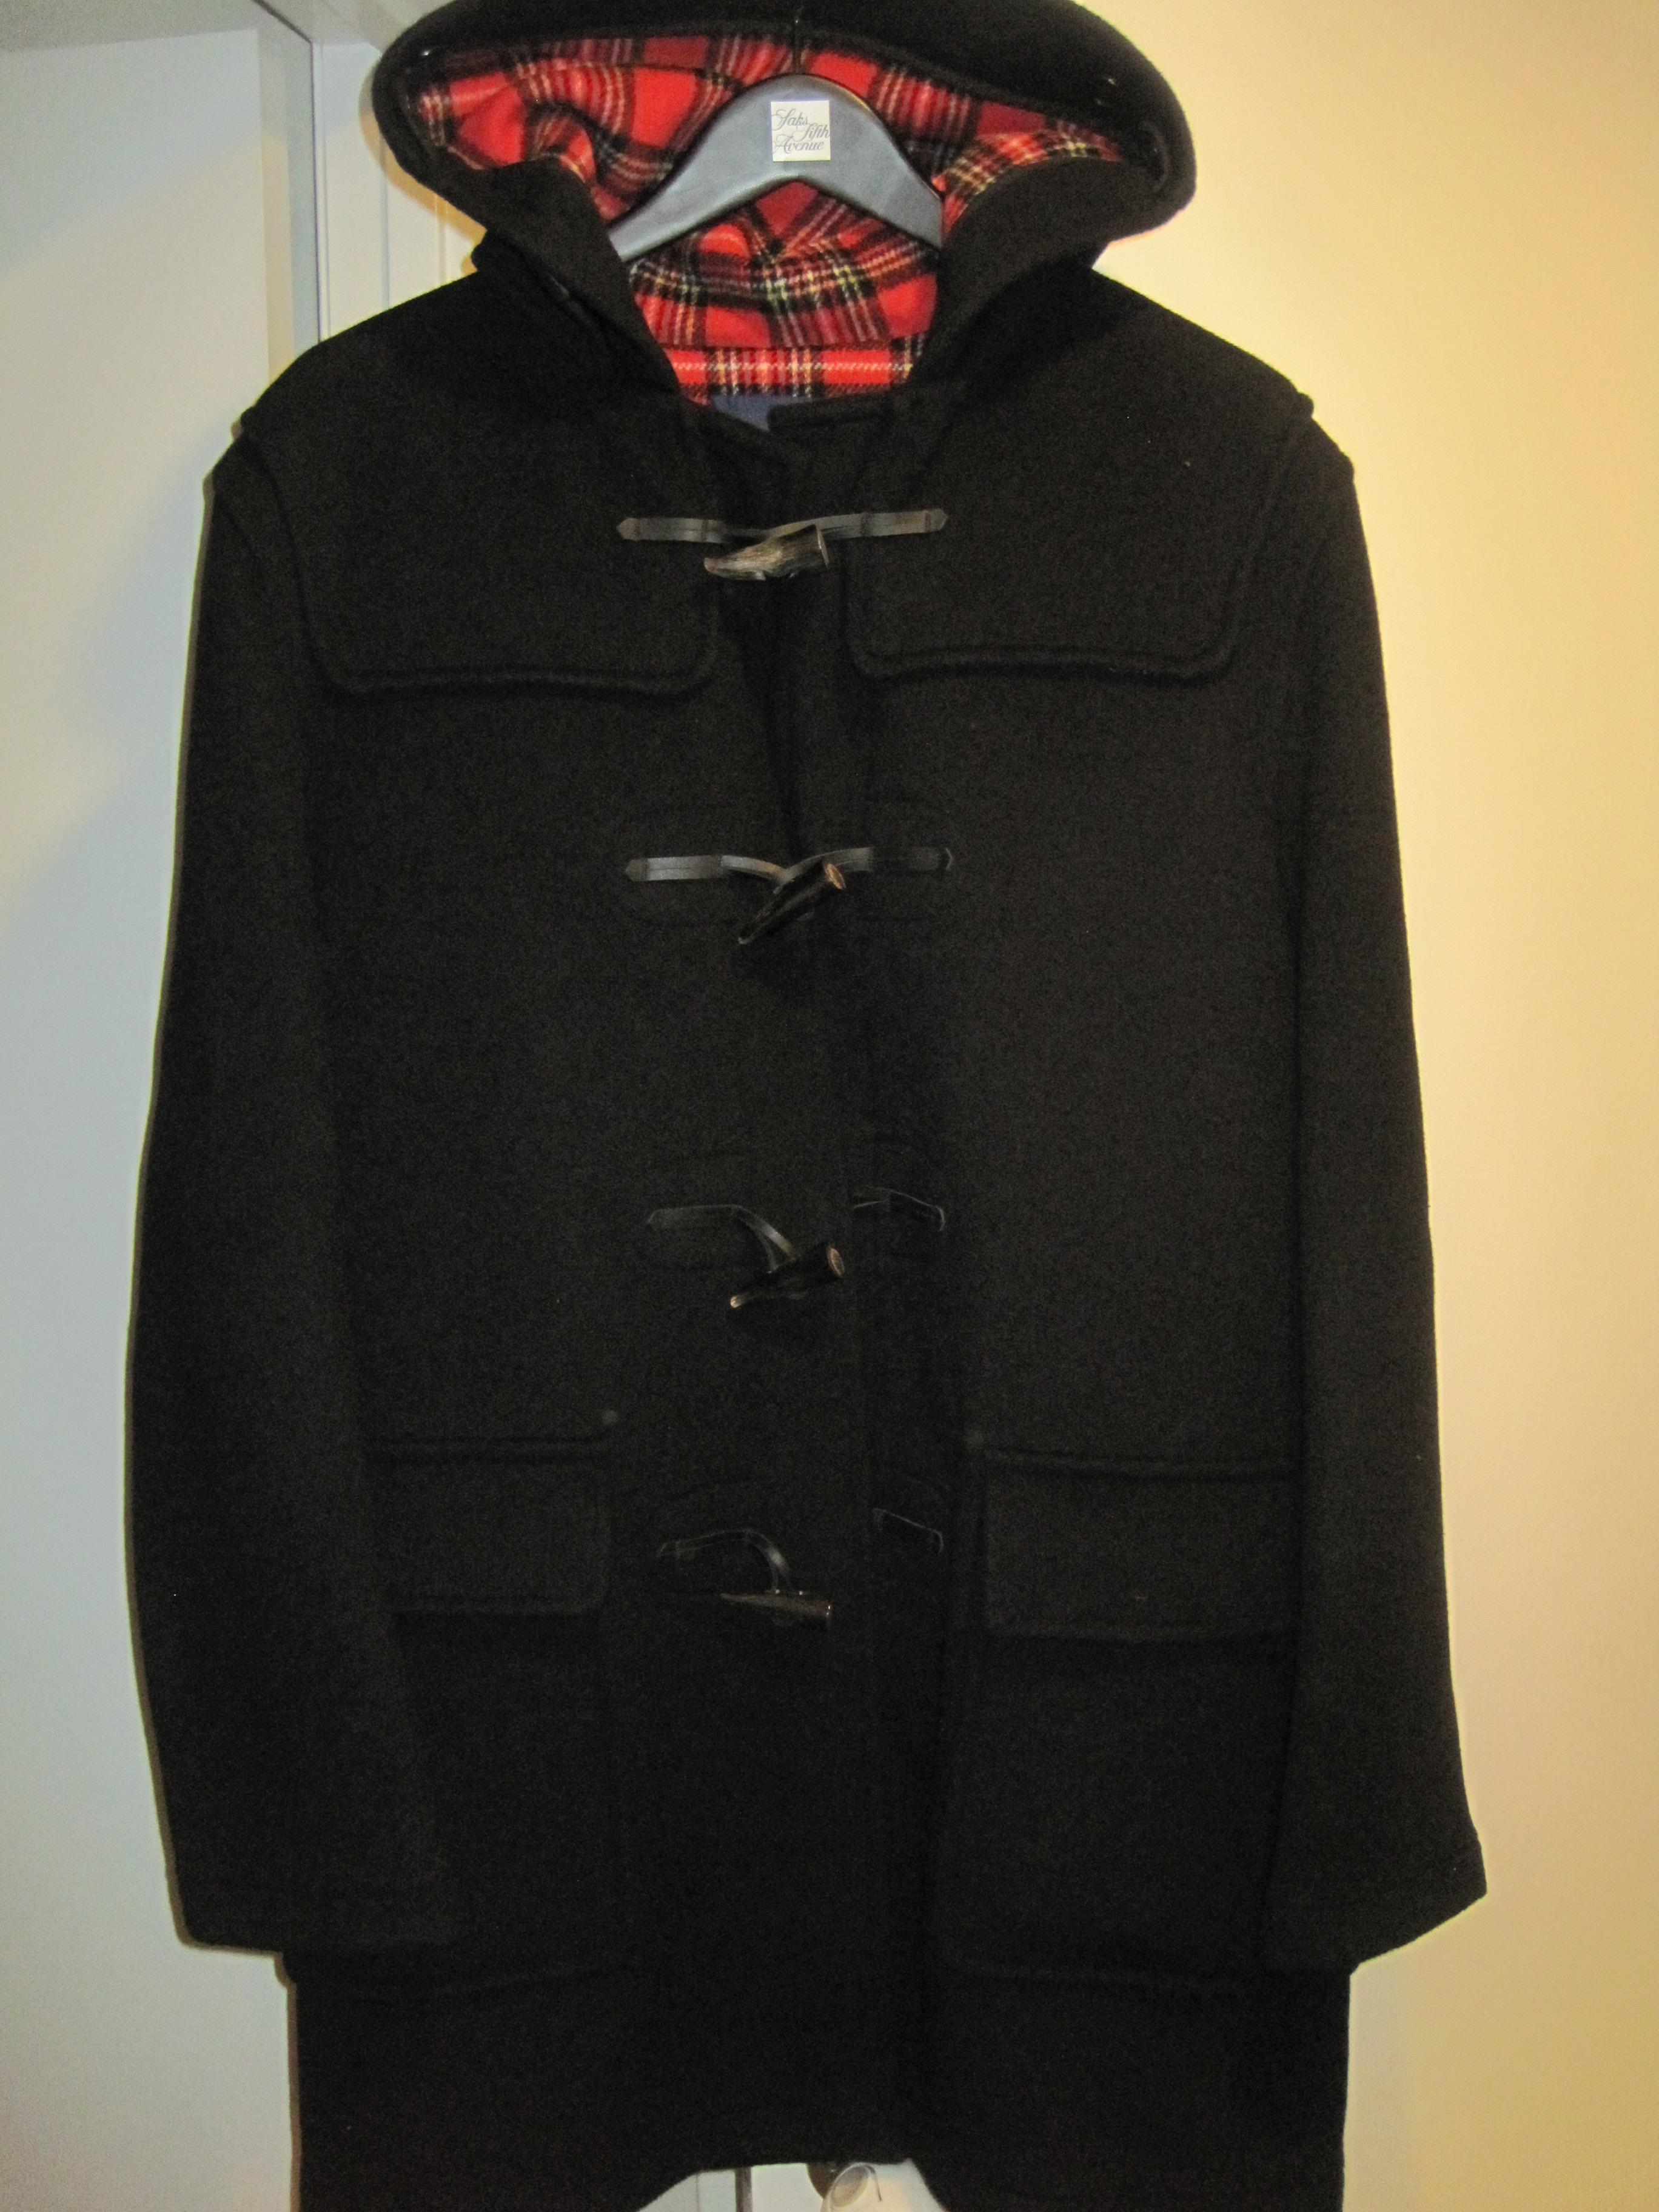 NWT Fred Perry x Gloverall Black Wool Duffle Coat Size 40 Made in